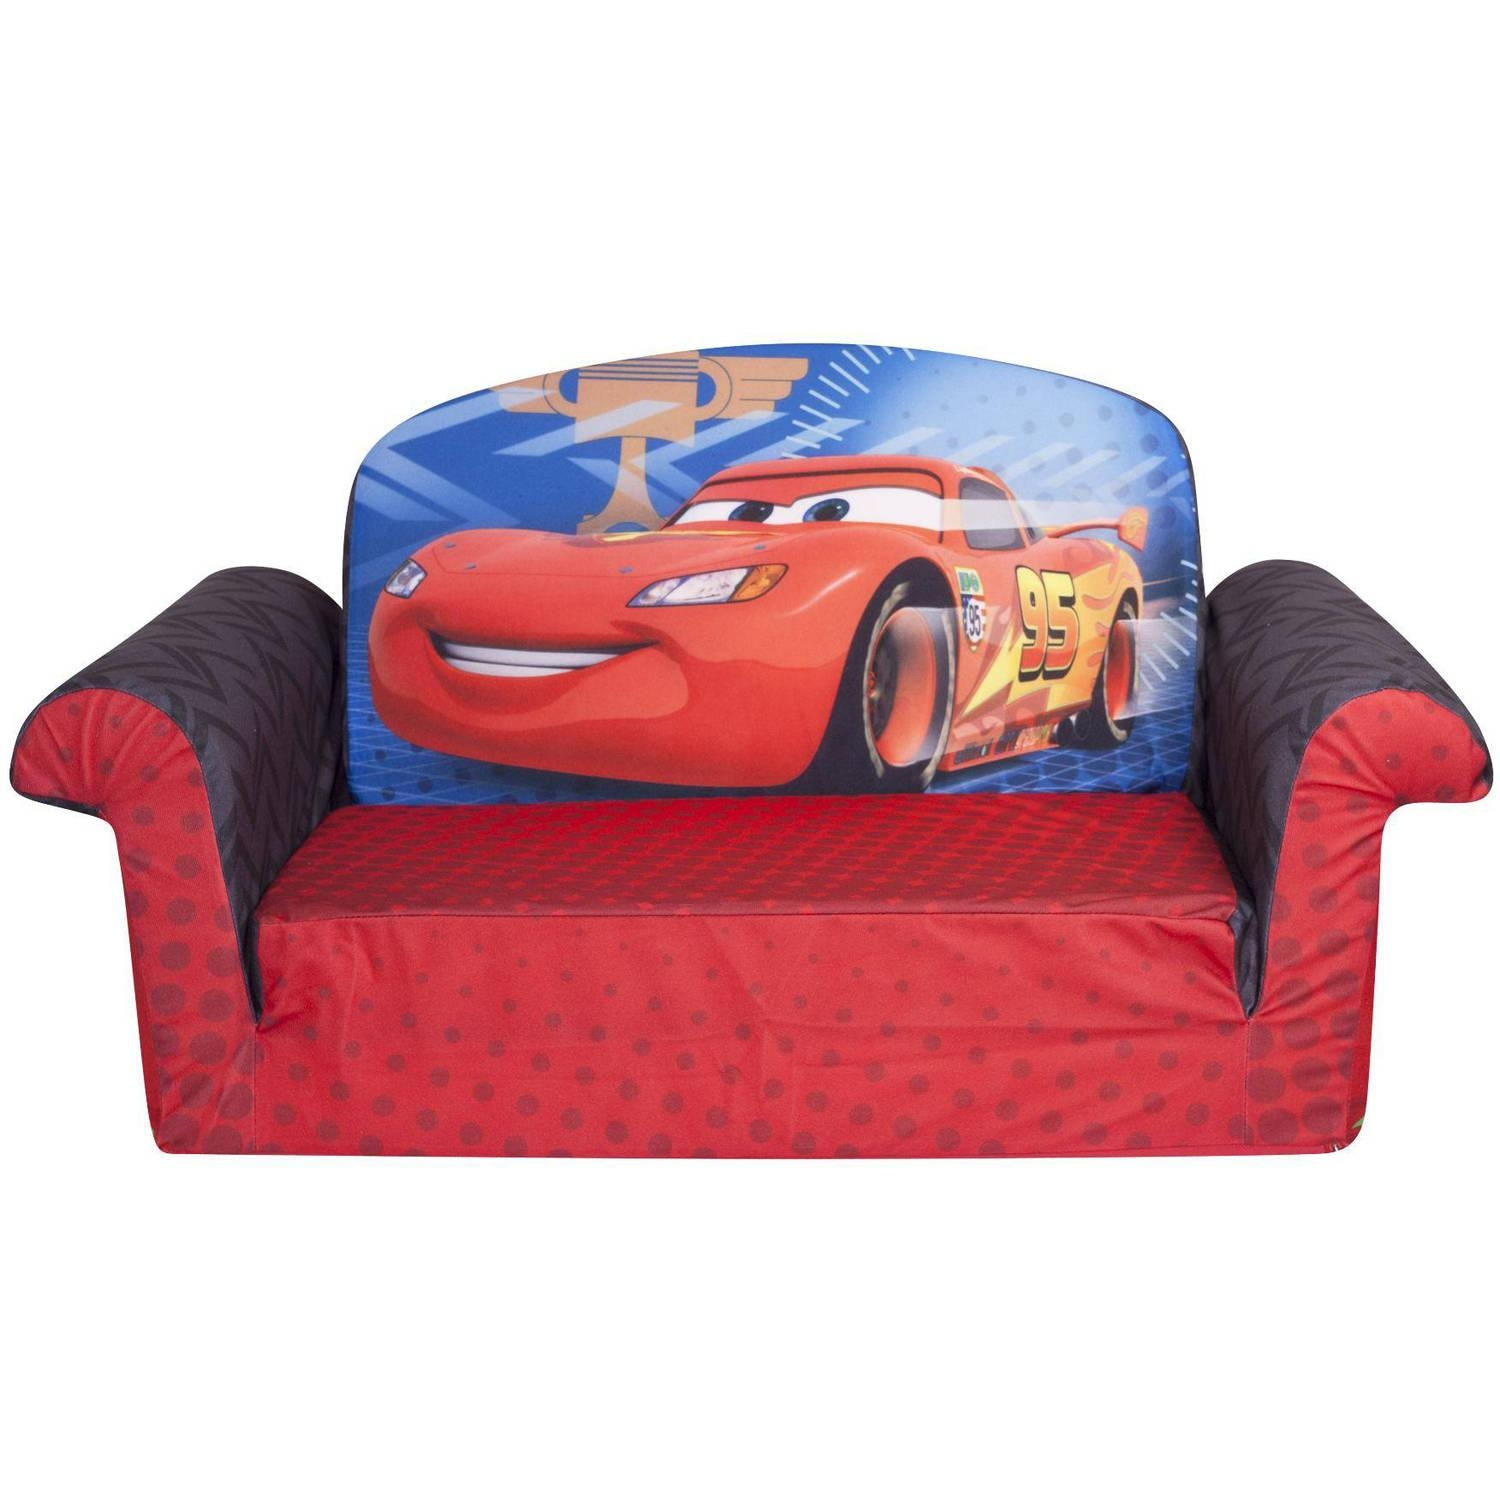 Marshmallow 2 In 1 Flip Open Sofa, Disney Cars 2 – Walmart Intended For Mickey Flip Sofas (View 15 of 20)